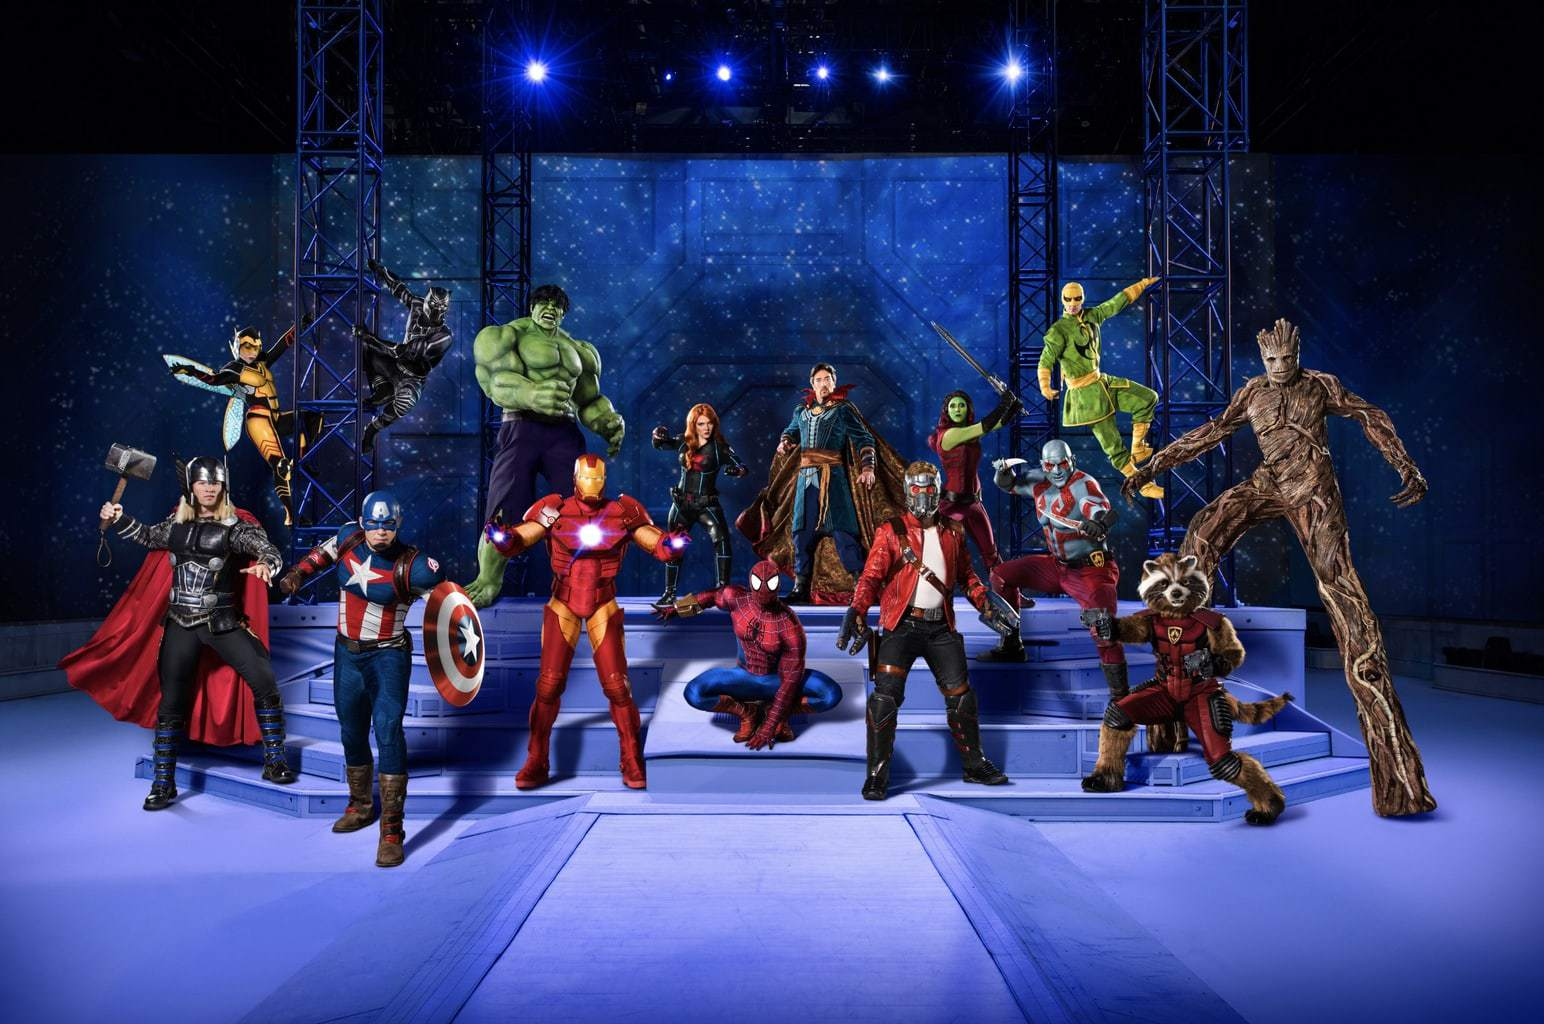 Marvel Universe LIVE! will visit Liverpool for the First Time in 2019 - you can sign-up for priority tickets!